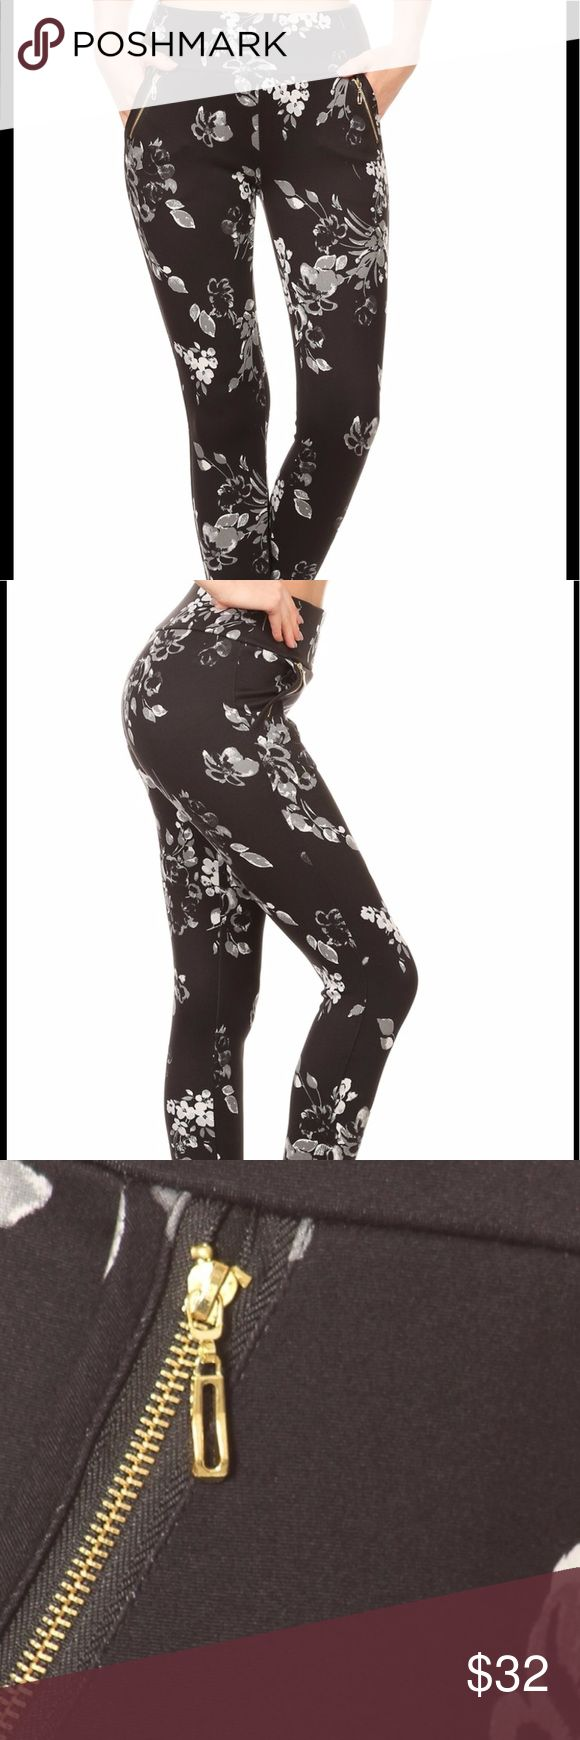 """Coming soon! Soft brushed floral Treggings I cannot wait for these to arrive! Black and white floral print """"treggings"""" with waist band and waist gold zipper side pockets.  These have the buttery soft feel of leggings. 92% polyester 8% spandex. Pants Leggings"""